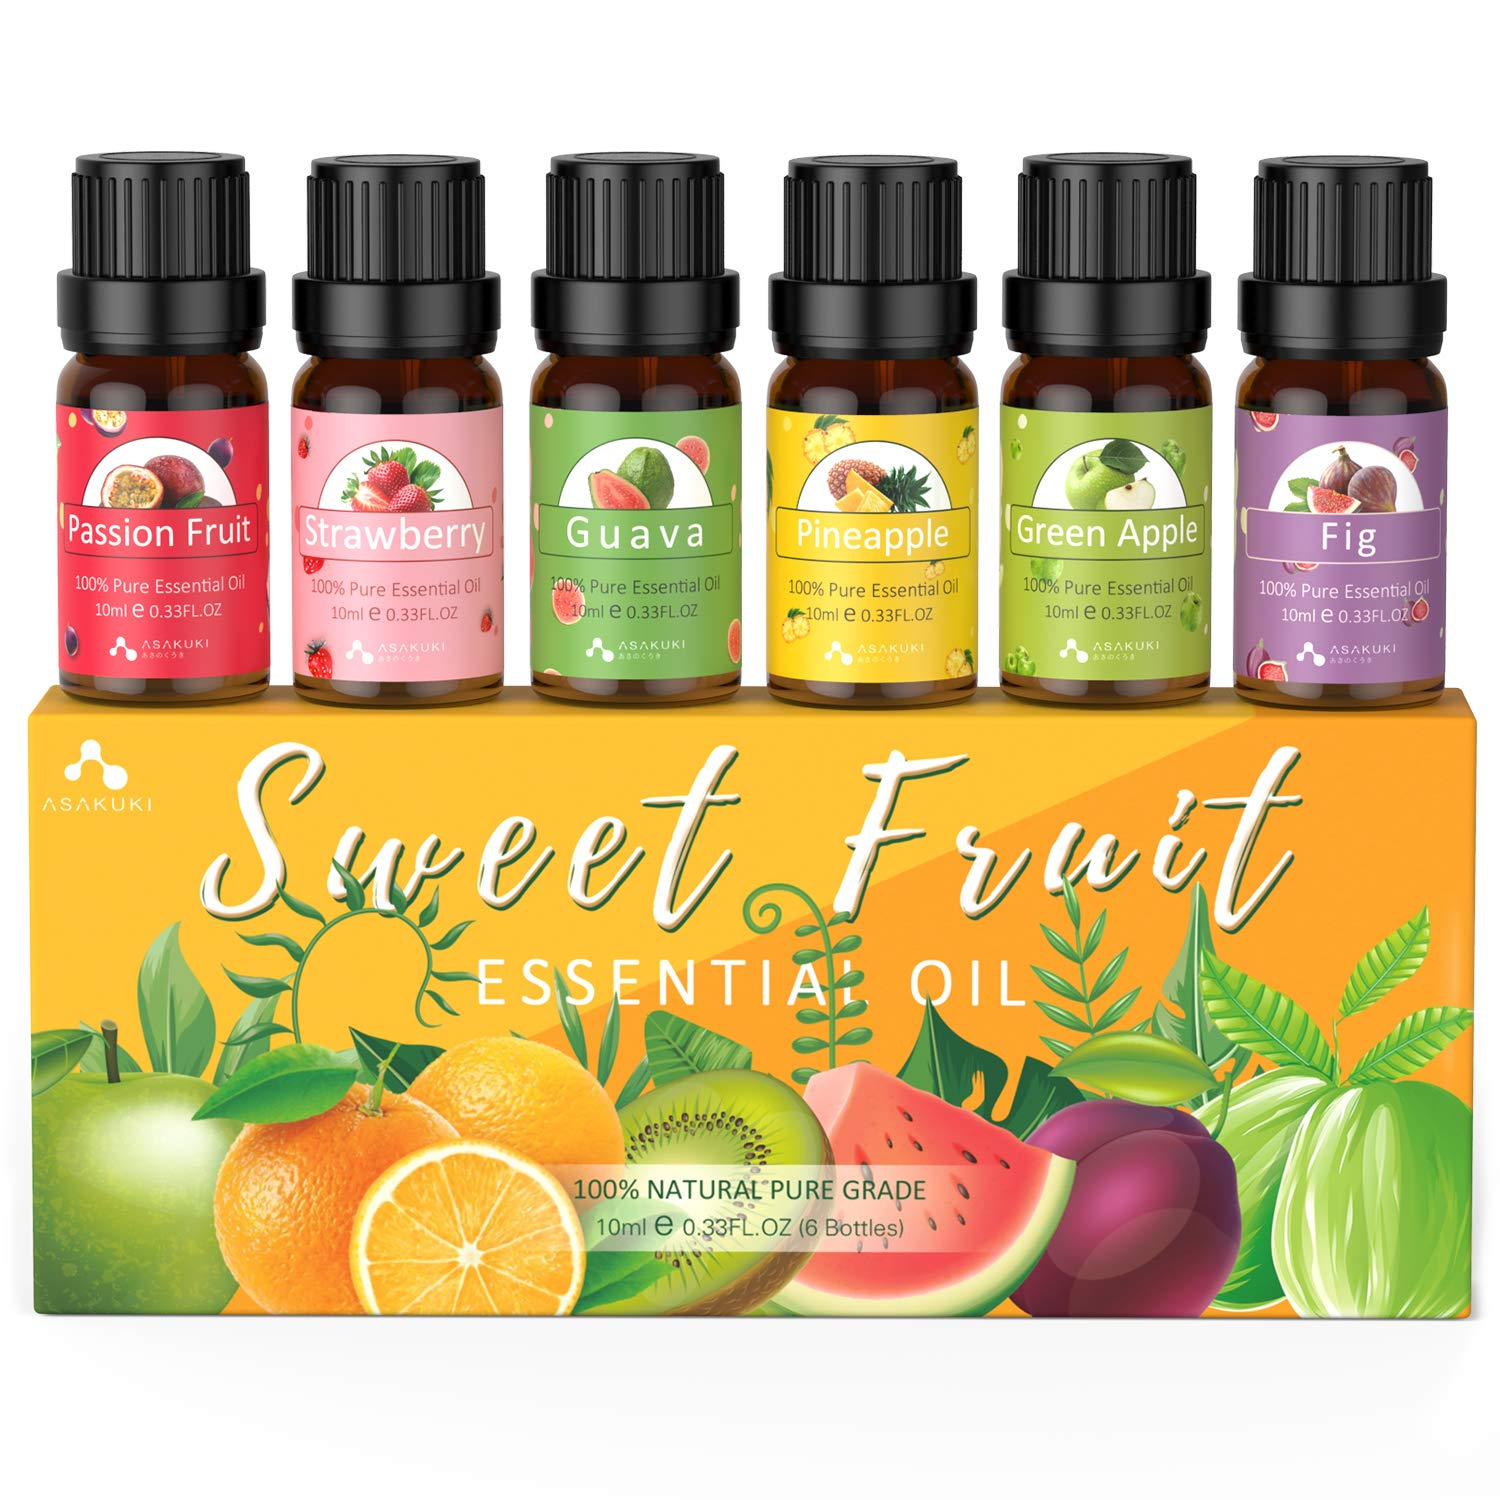 ASAKUKI Fruity Essential Oil Set of 6 Aromatherapy Oils for Diffusers, Passion Fruit, Strawberry, Guava, Pineapple, Green Apple, Fig Fruit Fragrance Gift Set for Home and Office